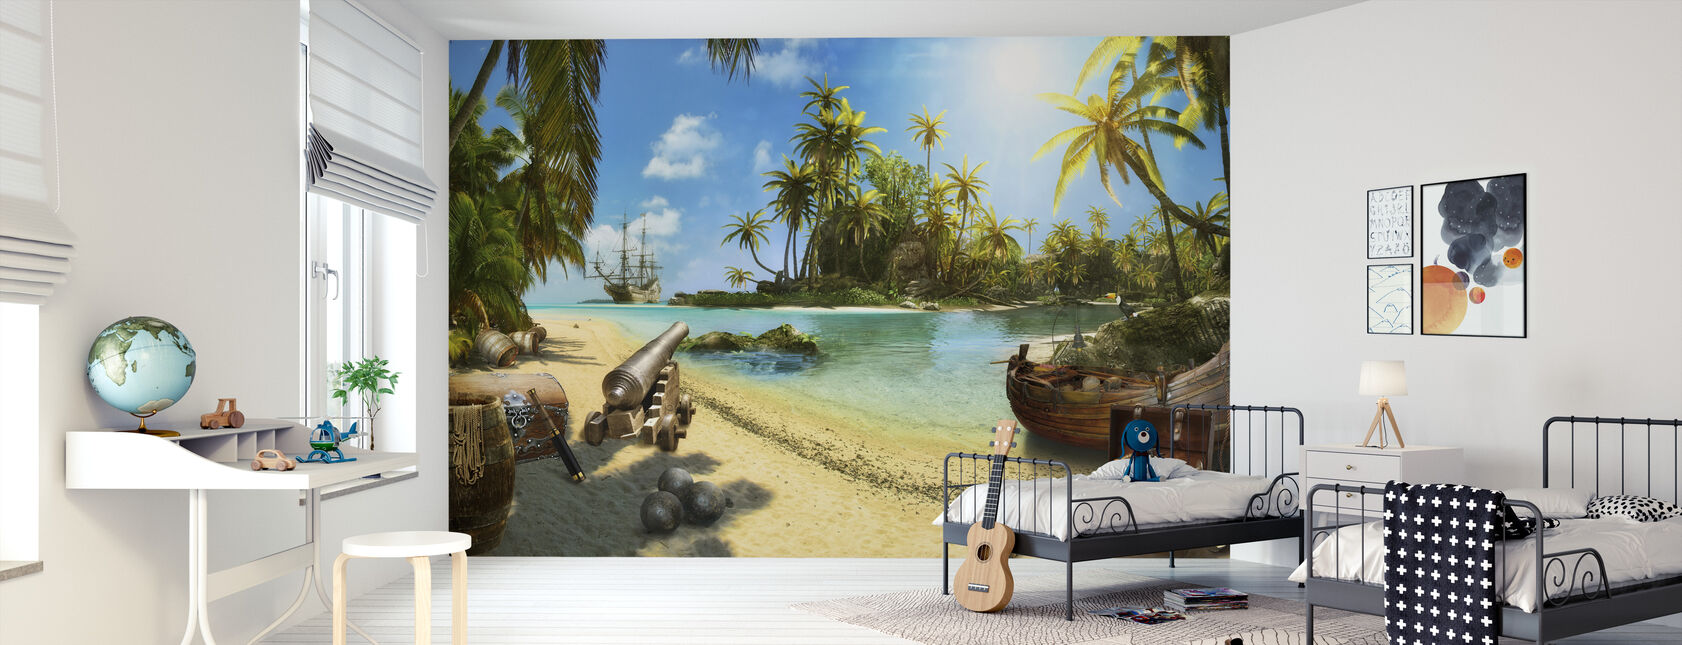 Pirate Island - Wallpaper - Kids Room